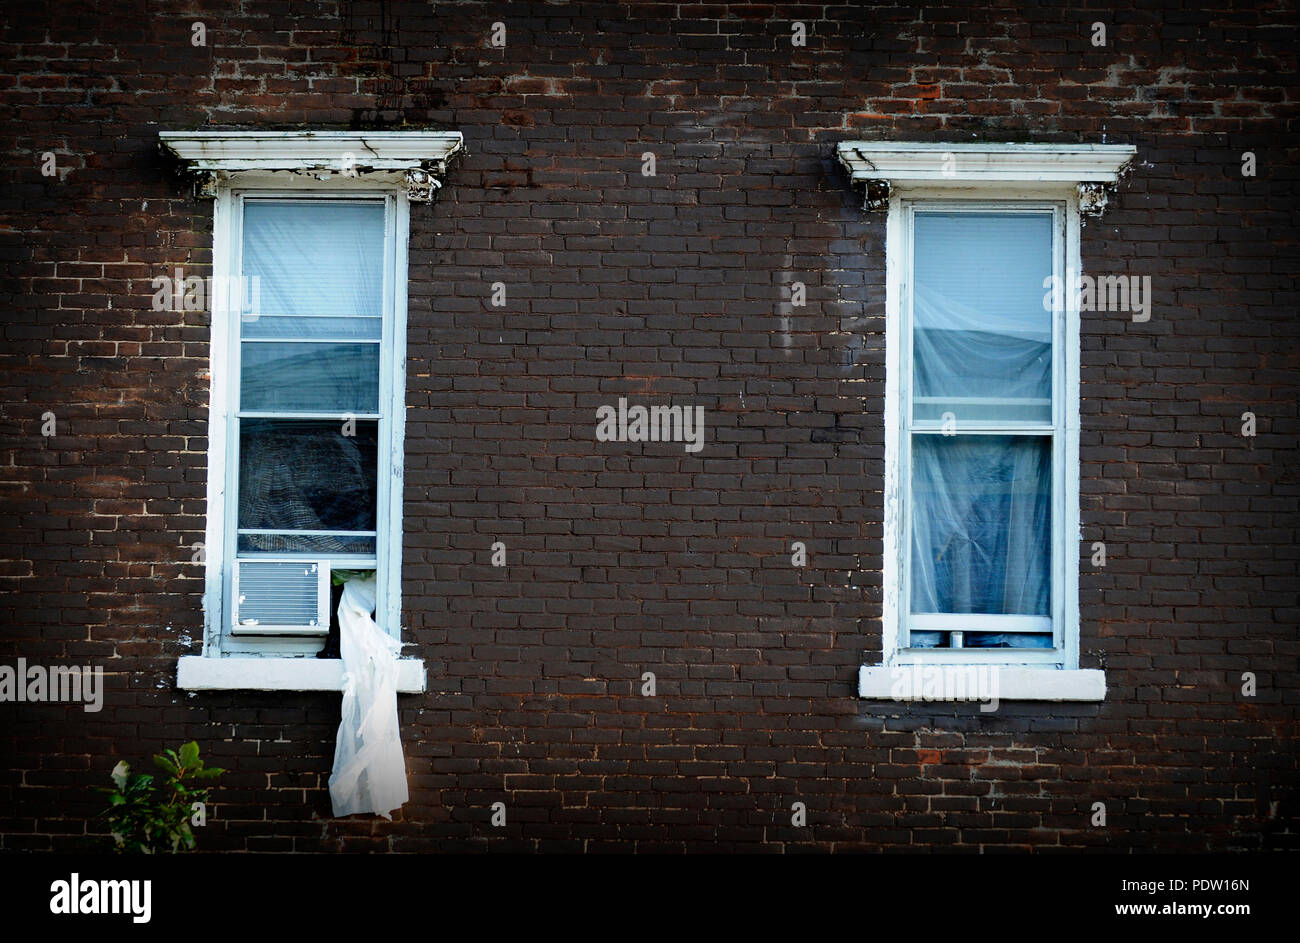 A curtain hangs out of one of the windows of a hotel in an old building. - Stock Image